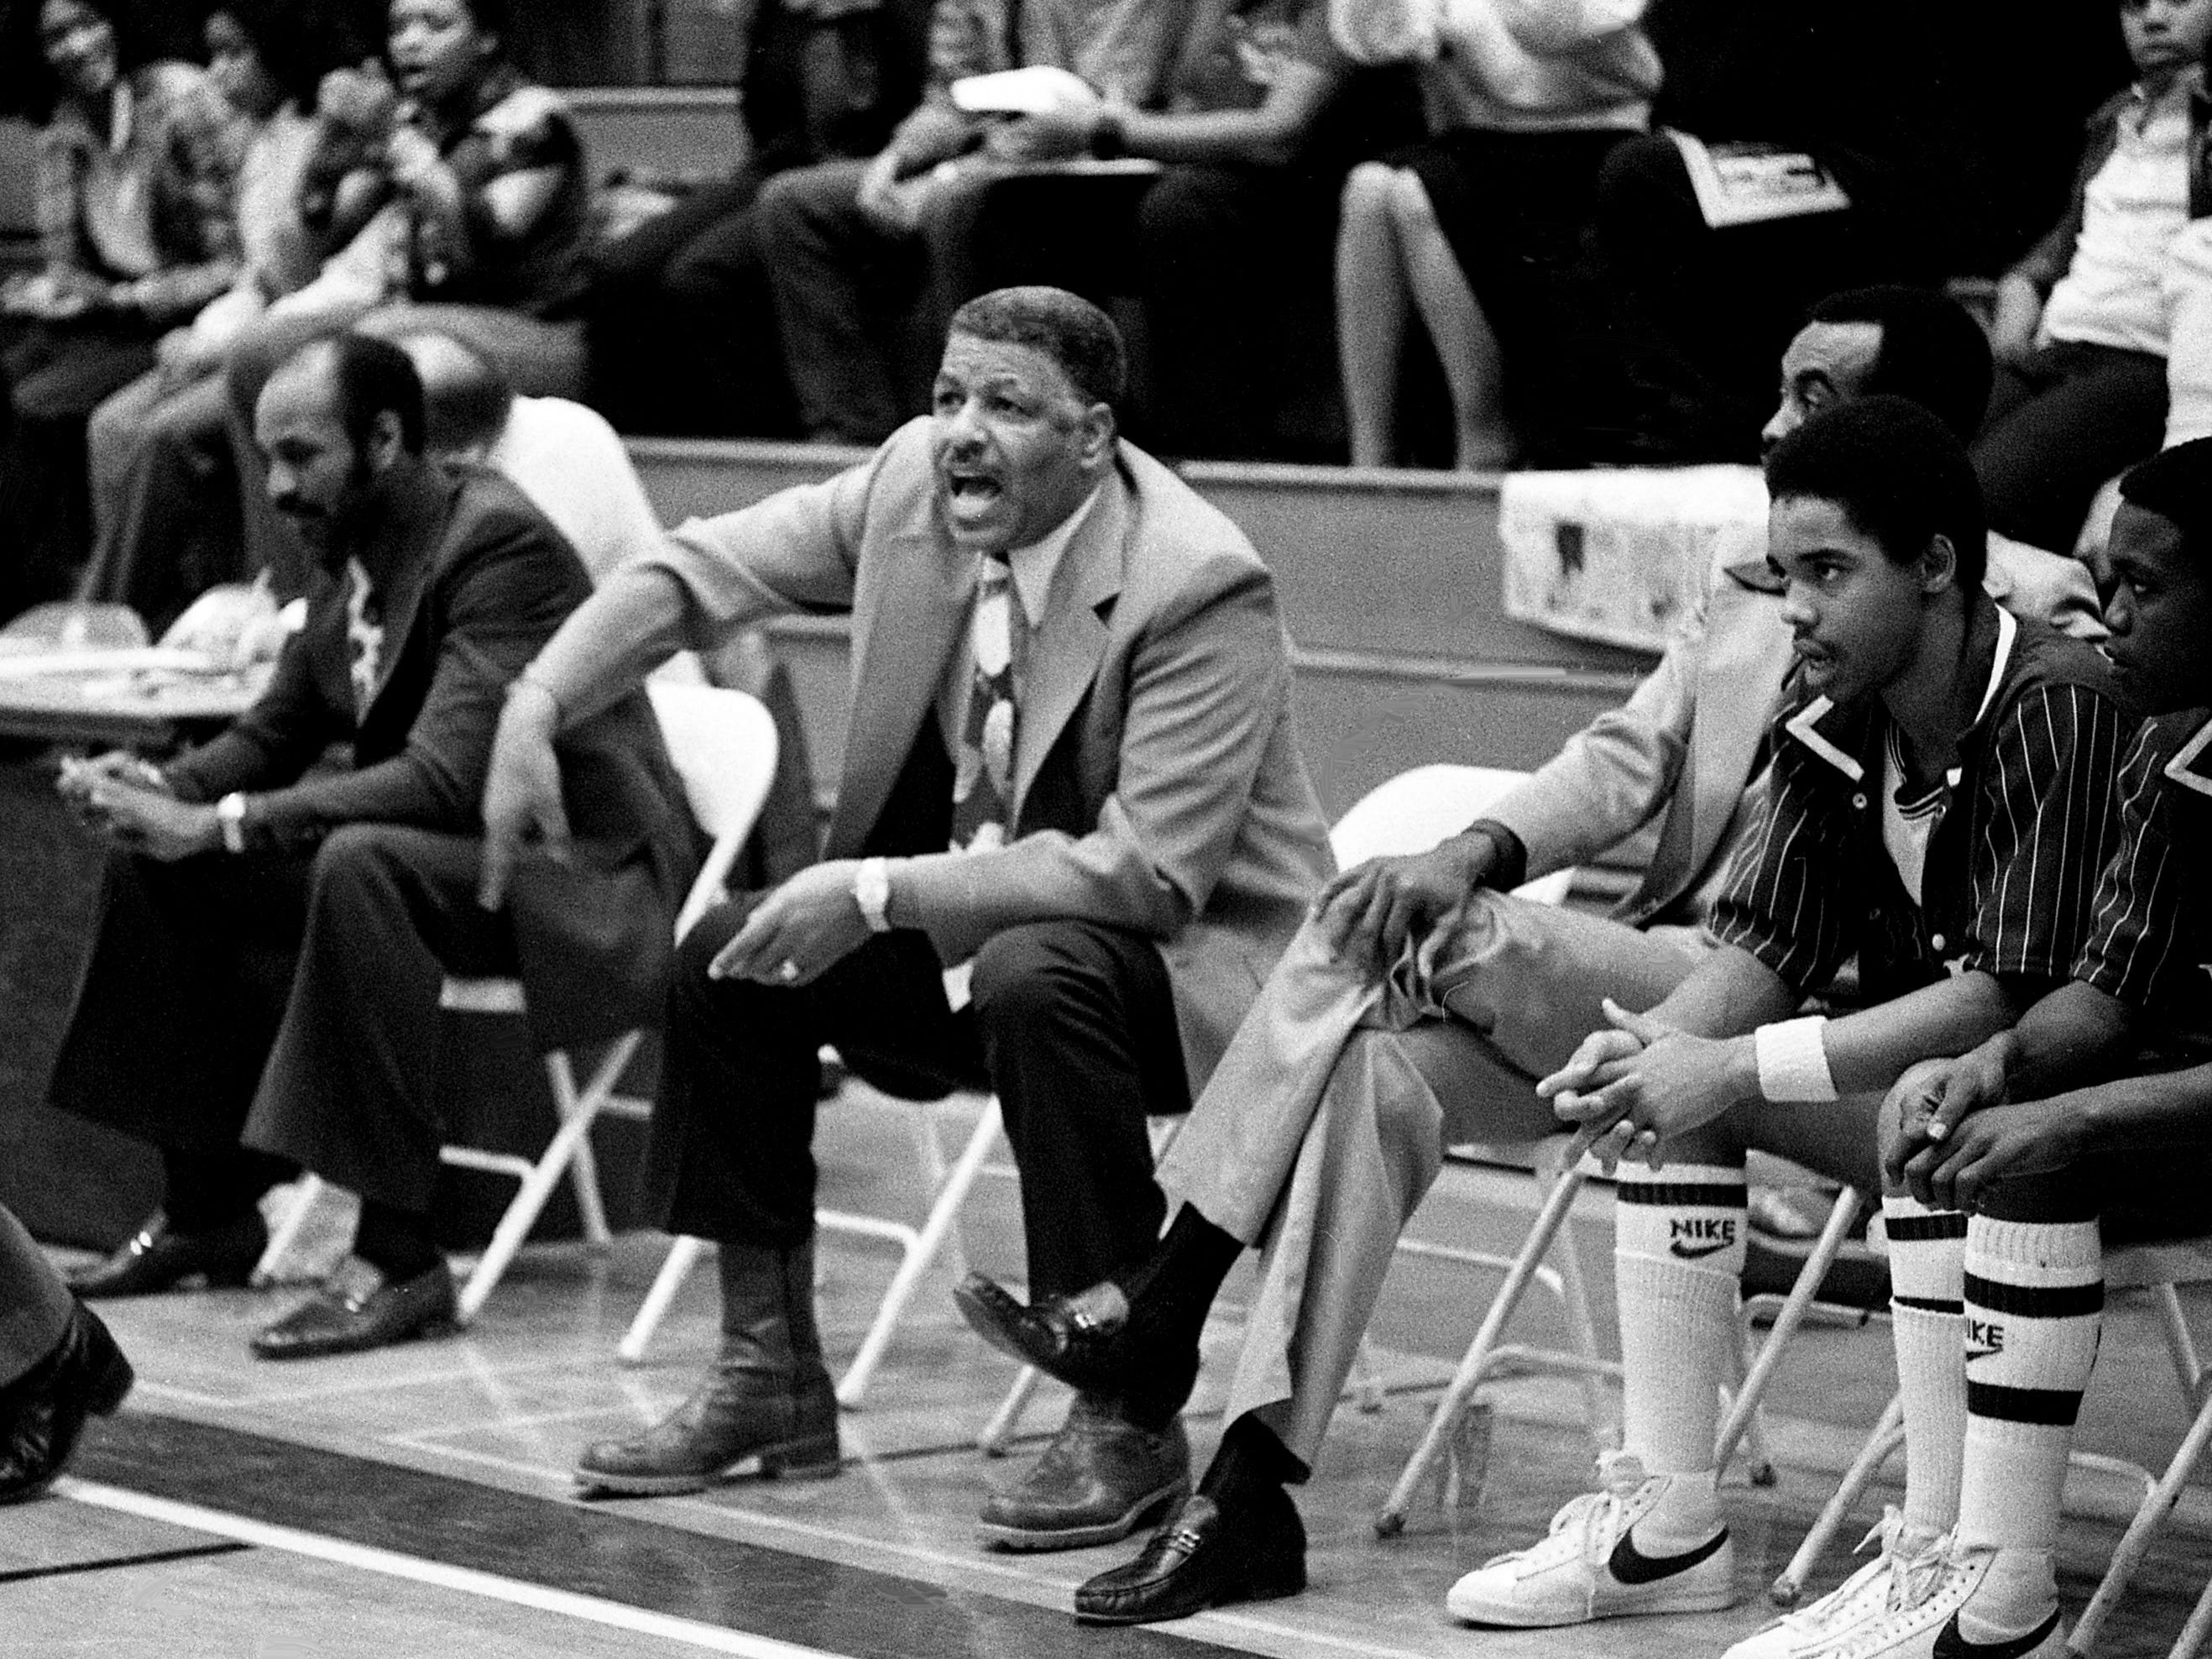 Tennessee State head coach Ed Martin, center, shouts instructions to his players, but it wasn't enough as they fell 84-81 to Alabama State in their season finale at home in Kean's Little Garden on Feb. 24, 1979.